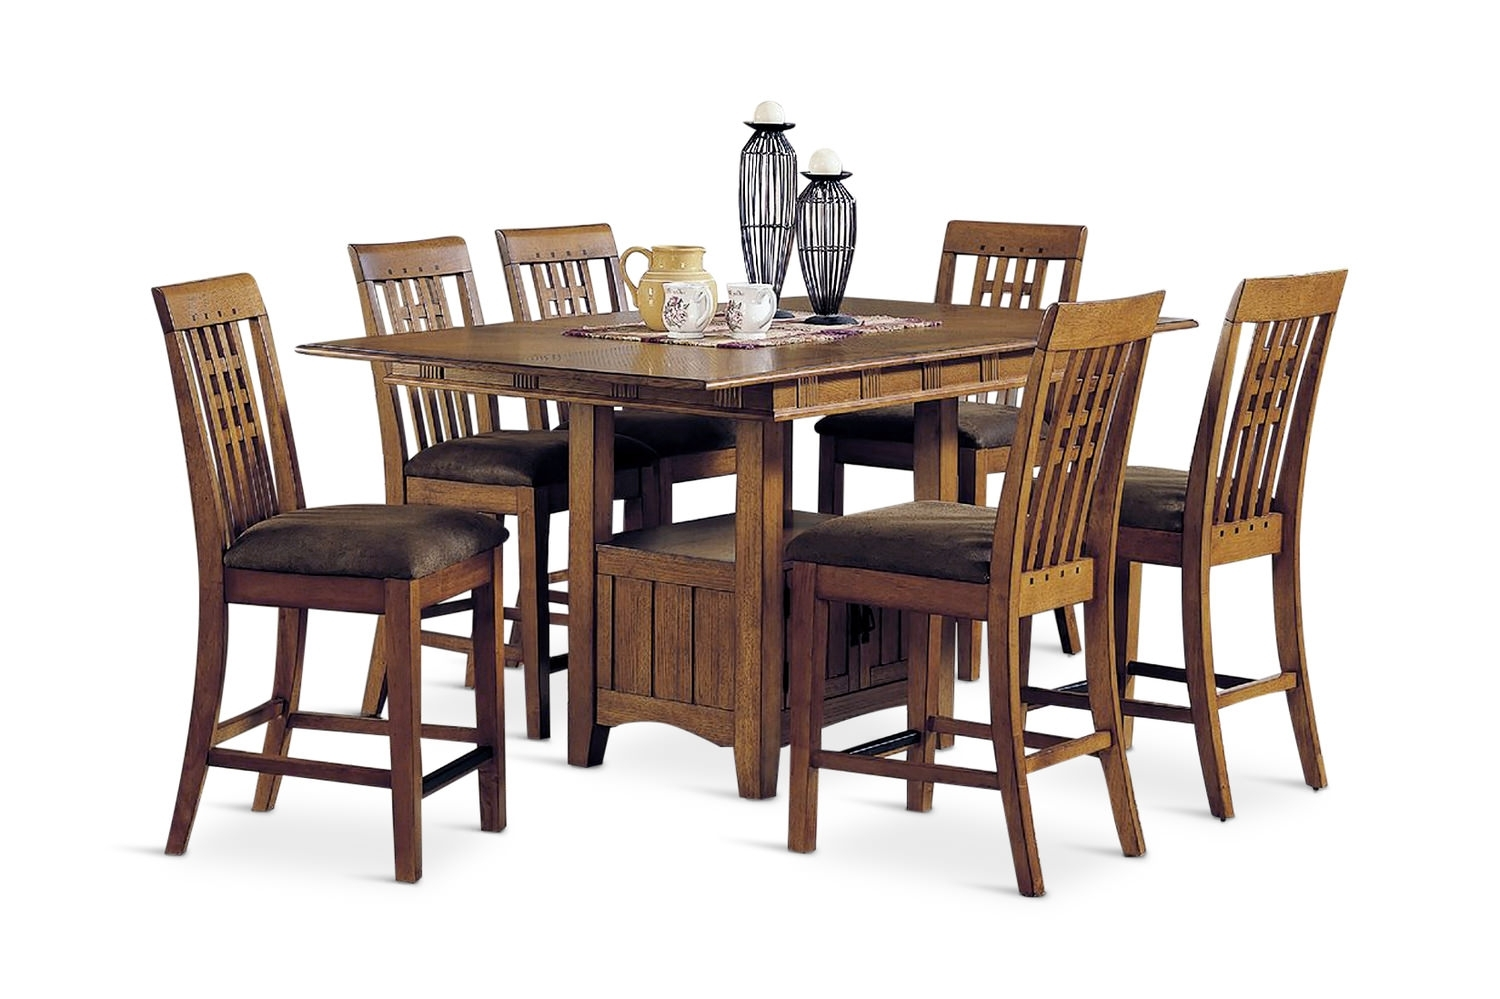 Dining Sets – Kitchen & Dining Room Sets – Hom Furniture For Current Chapleau Ii 7 Piece Extension Dining Table Sets (Image 10 of 20)